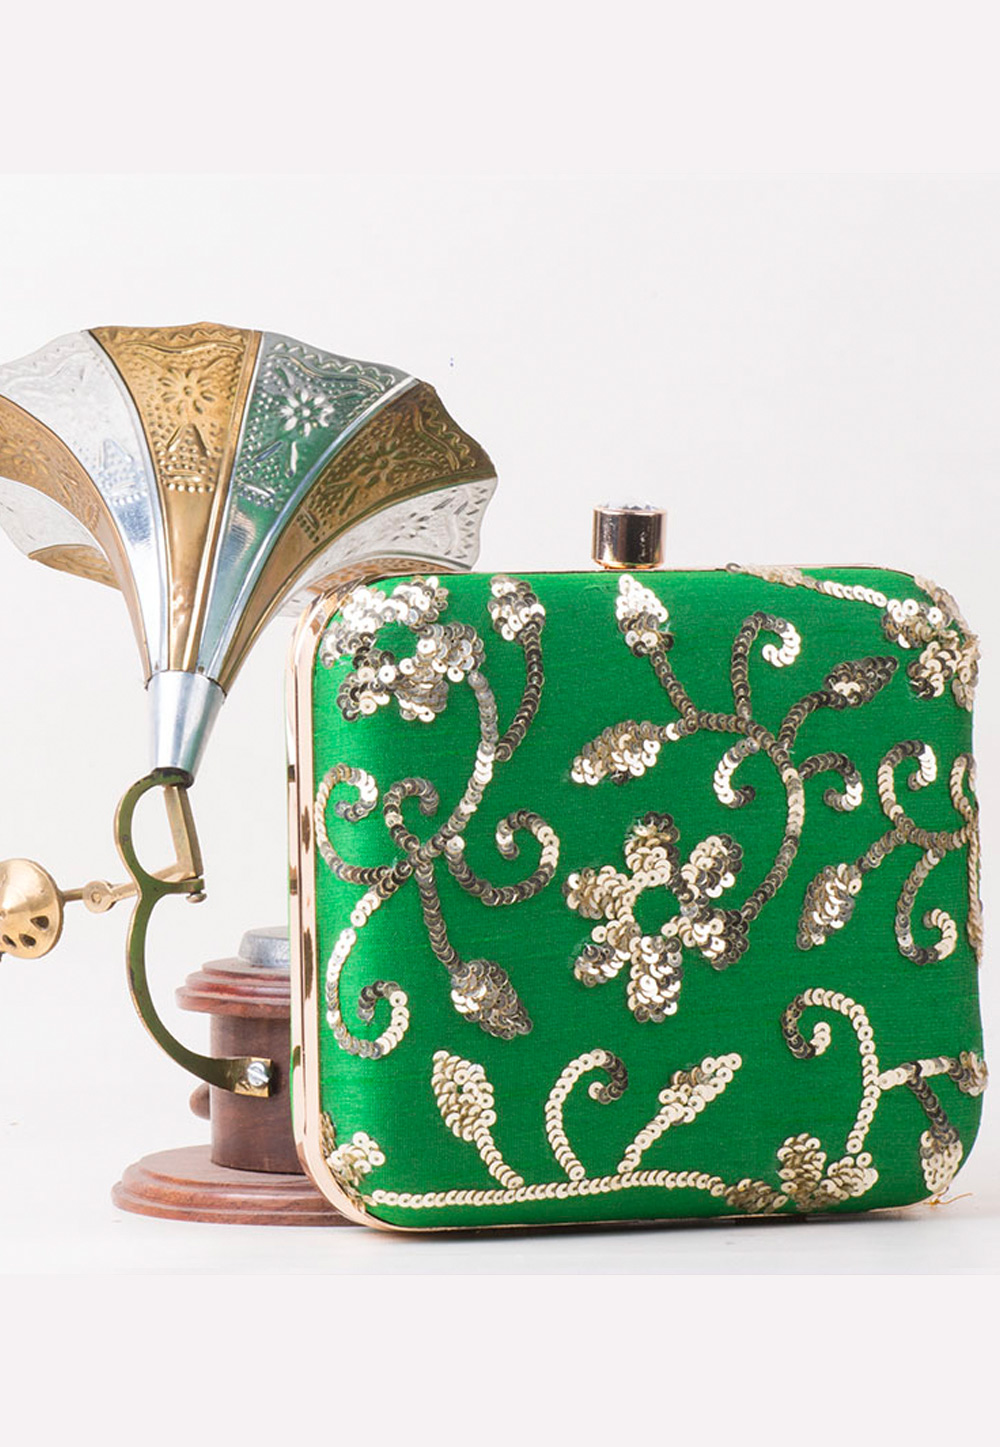 Green Synthetic Embroidered Clutch 172760